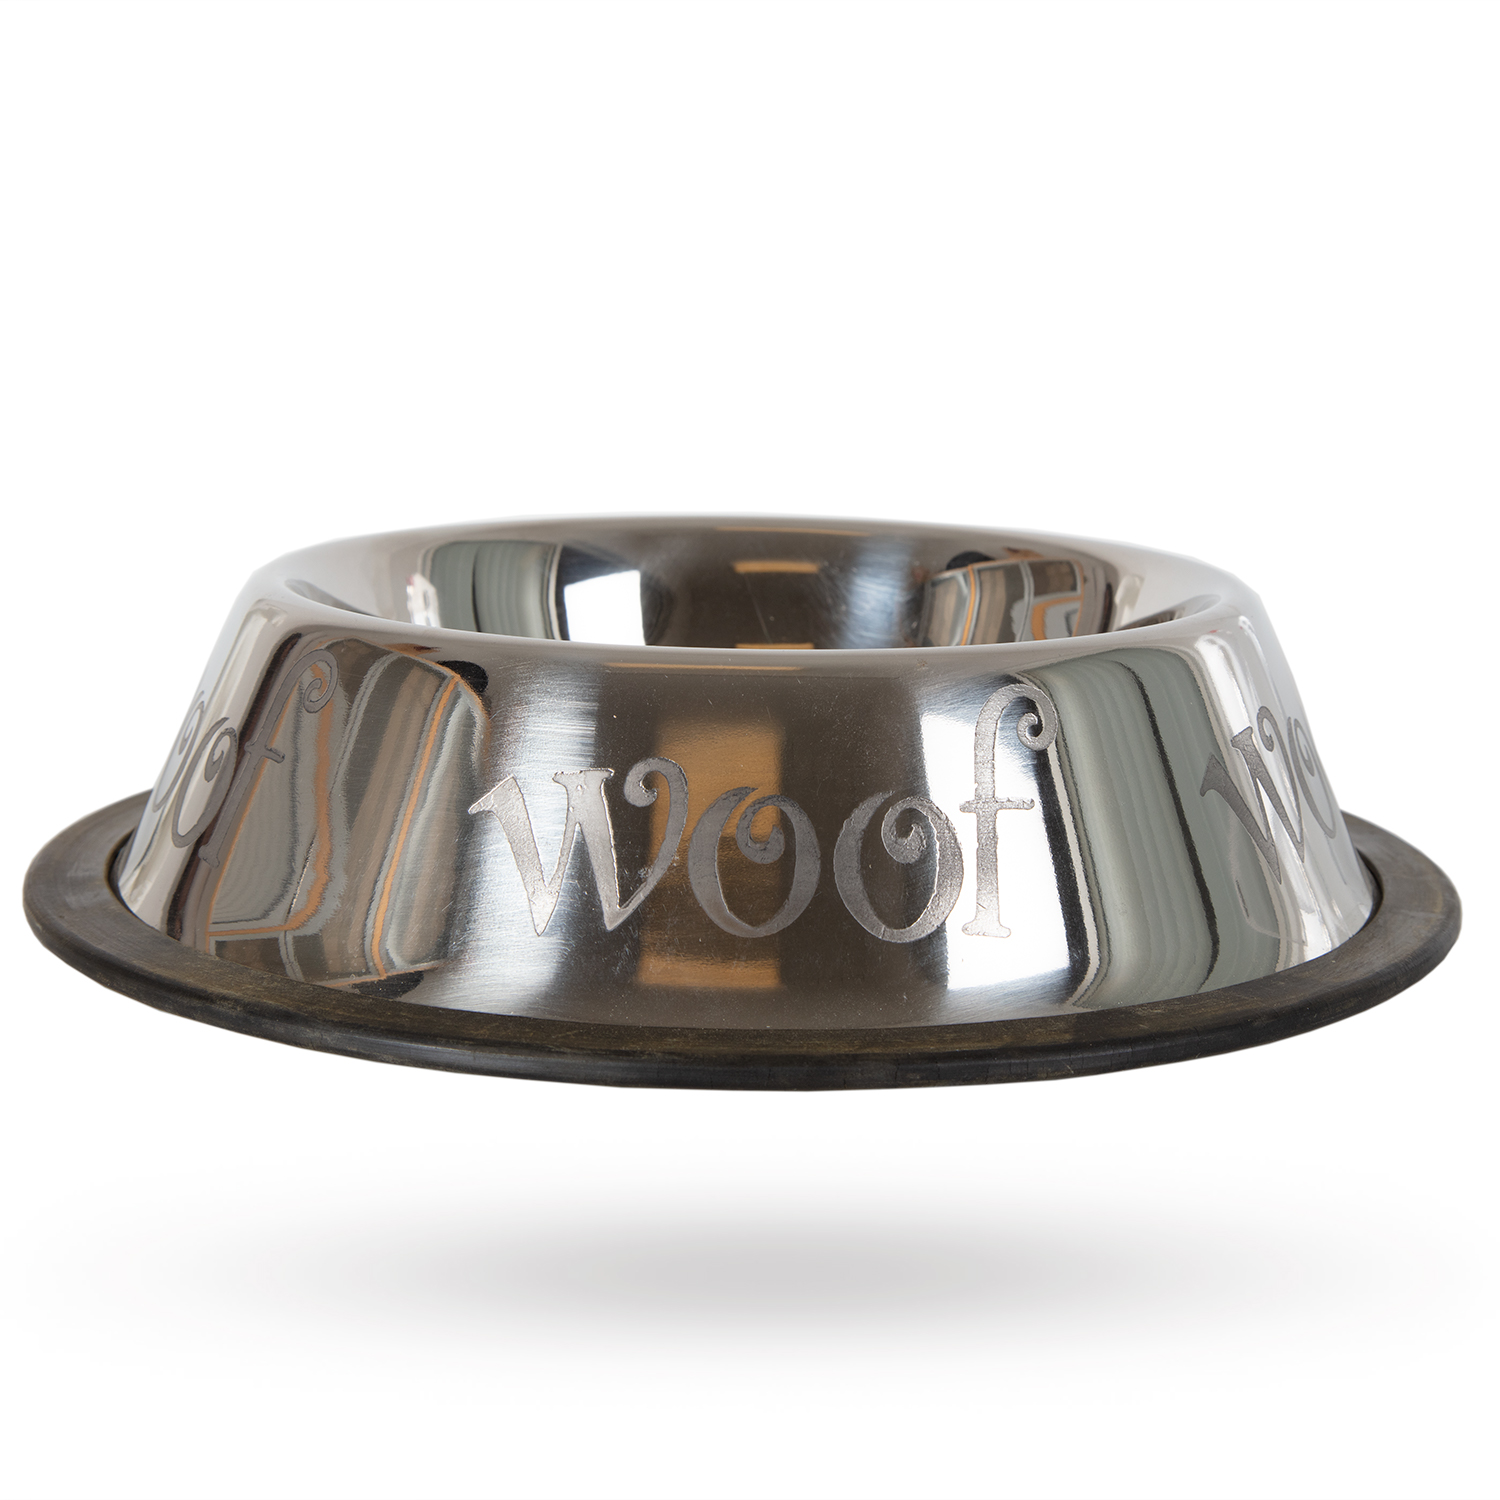 Non-Tip Stainless Steel Bowl - Woof 10dl - Mat / Godis